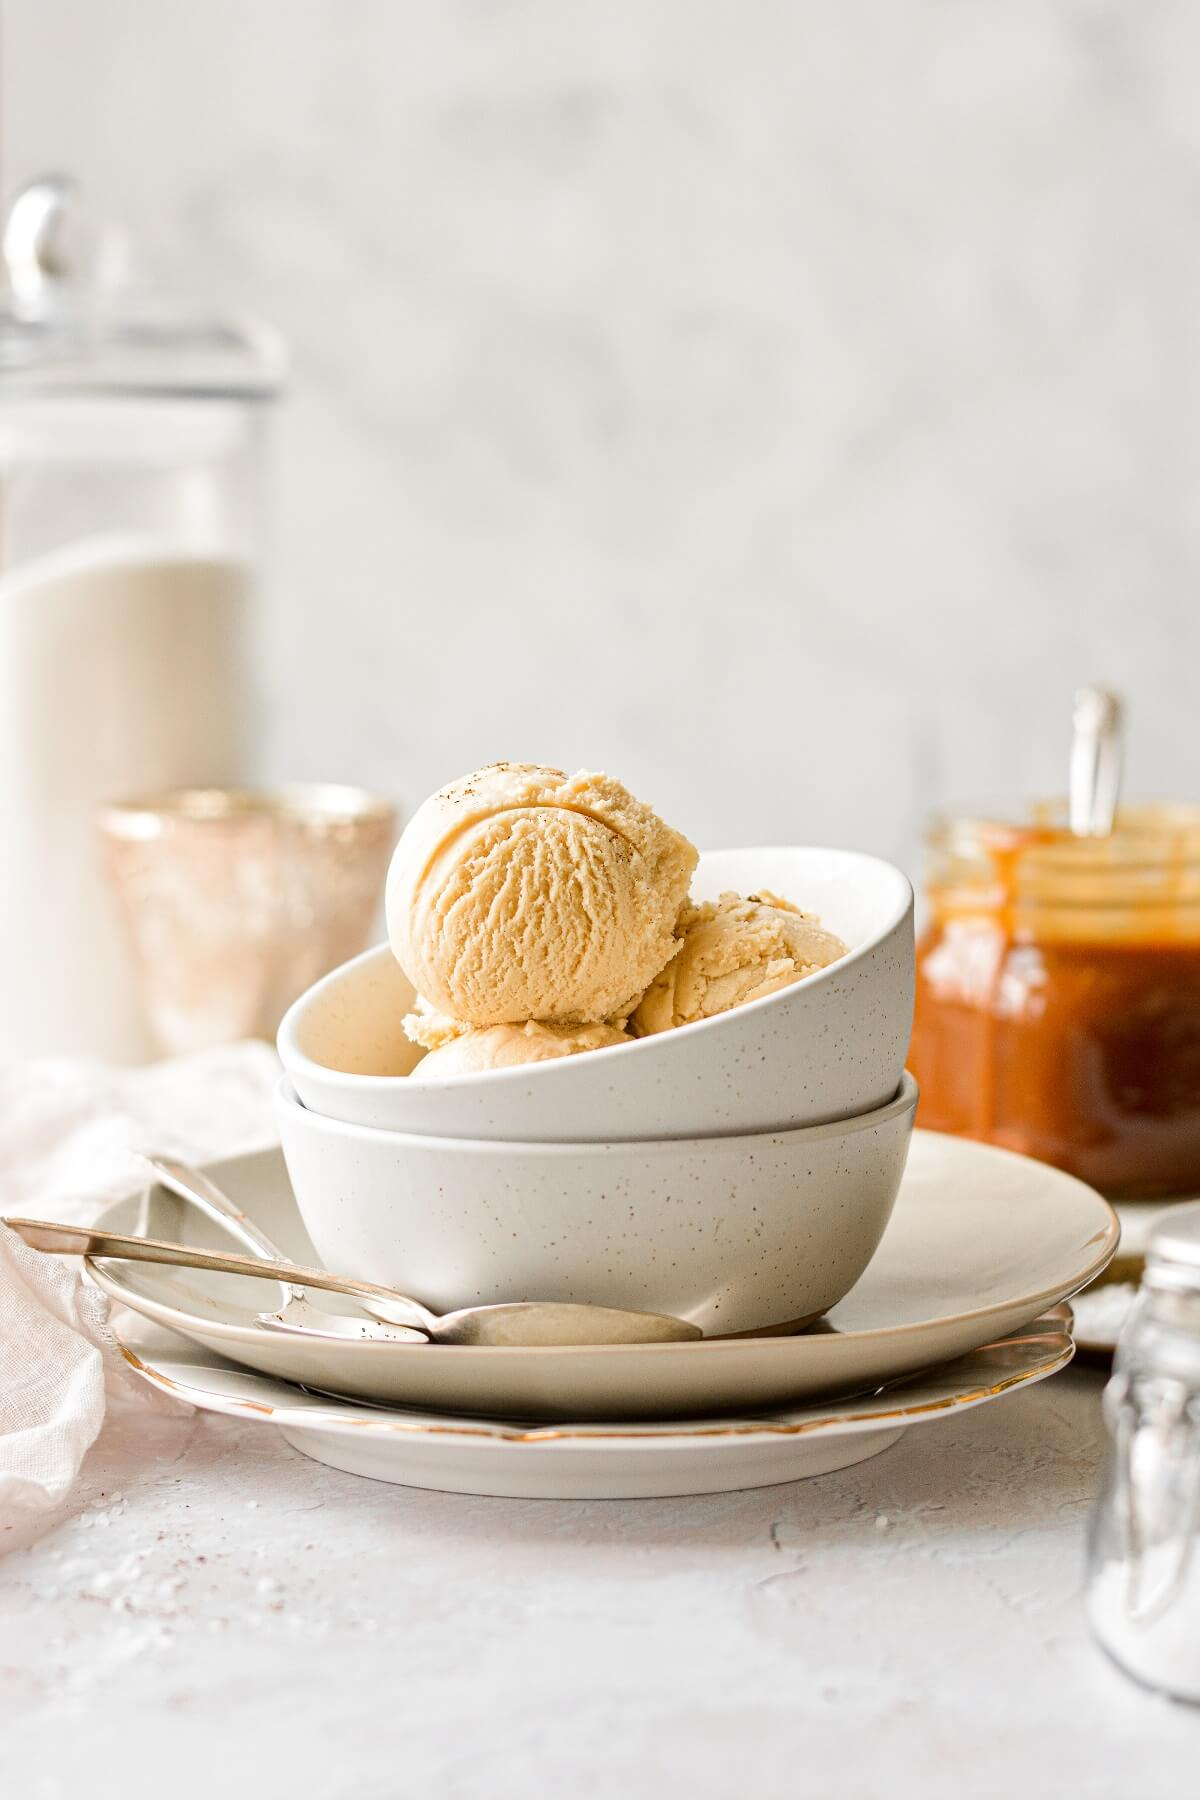 A bowl of salted caramel ice cream.